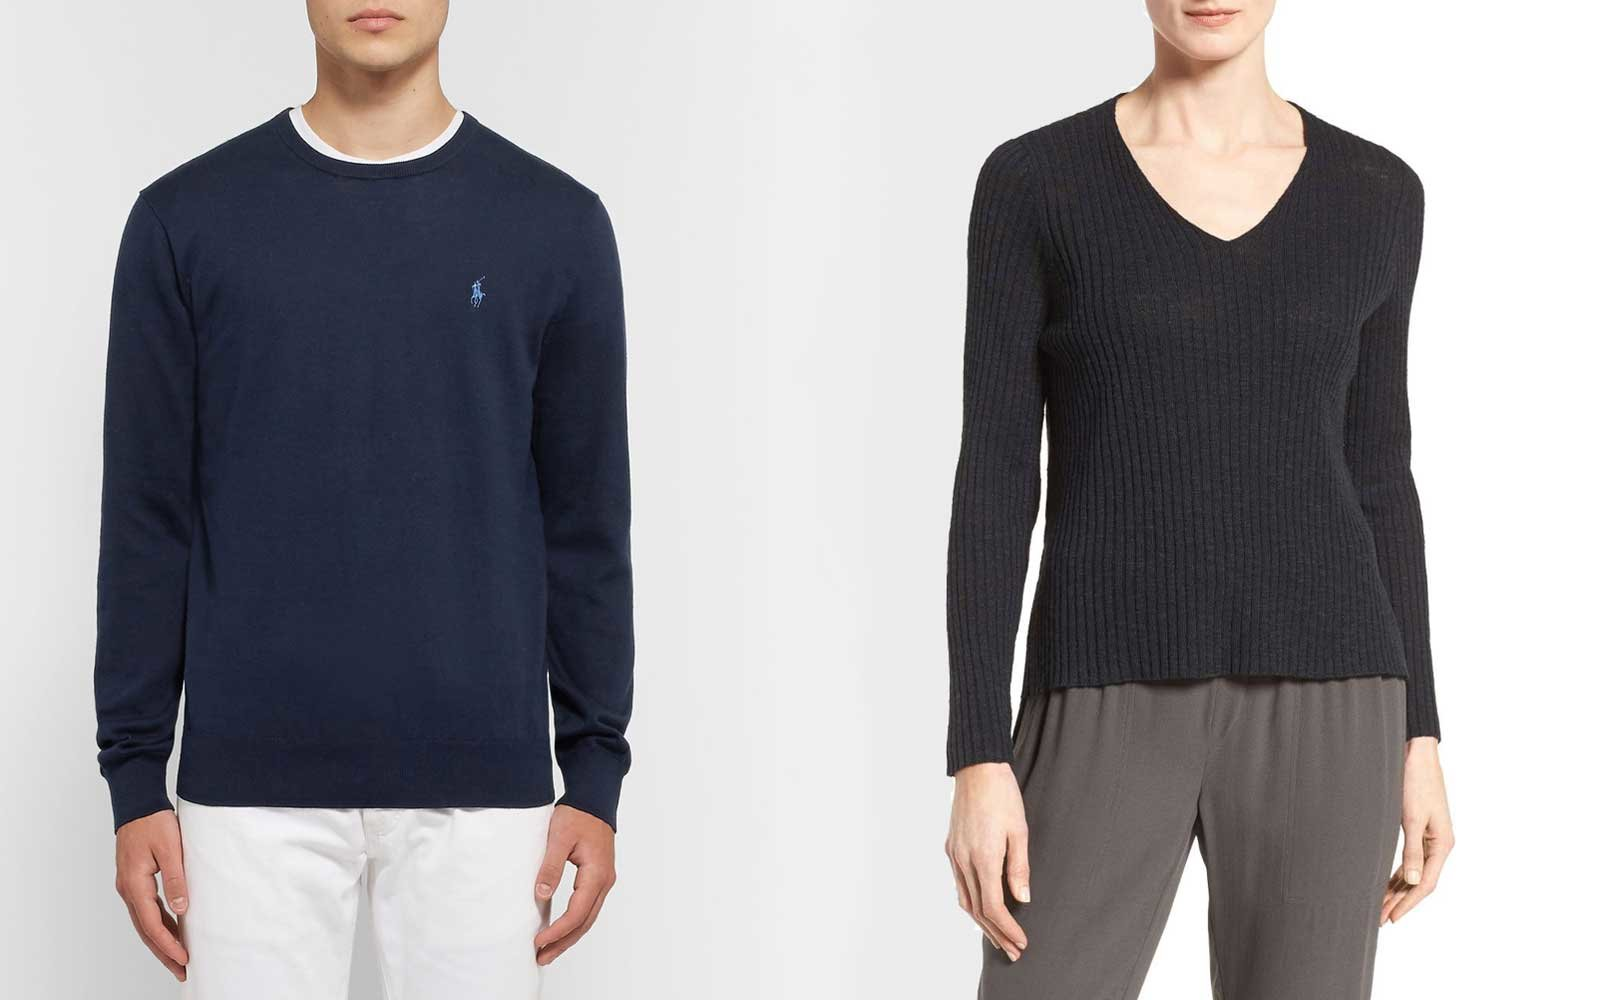 Sweaters from Polo Ralph Lauren and Eileen Fisher